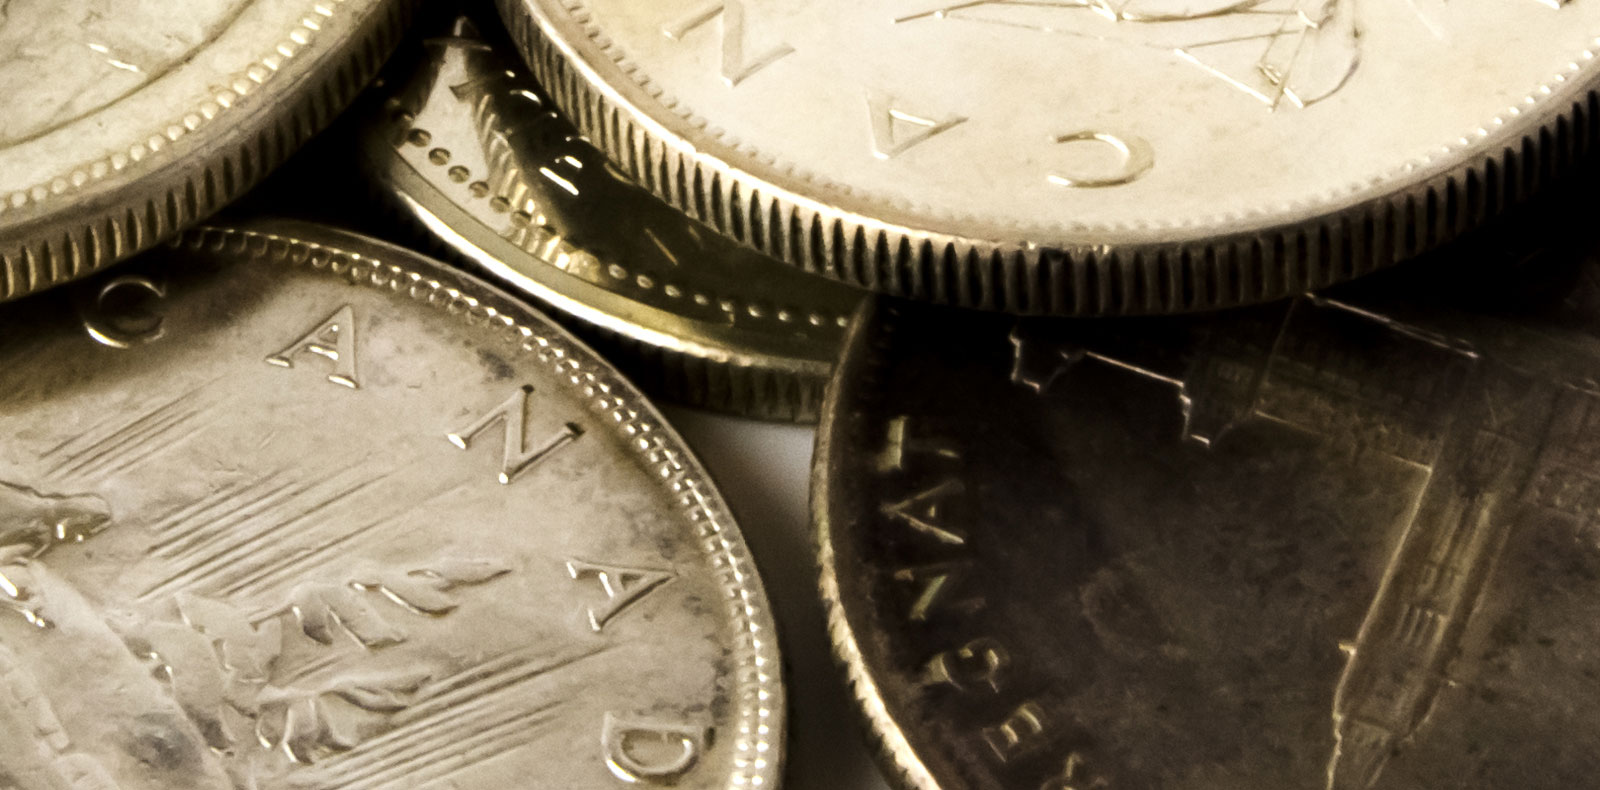 Sterling struggles against the Canadian Dollar, as concerns grow over UK recession